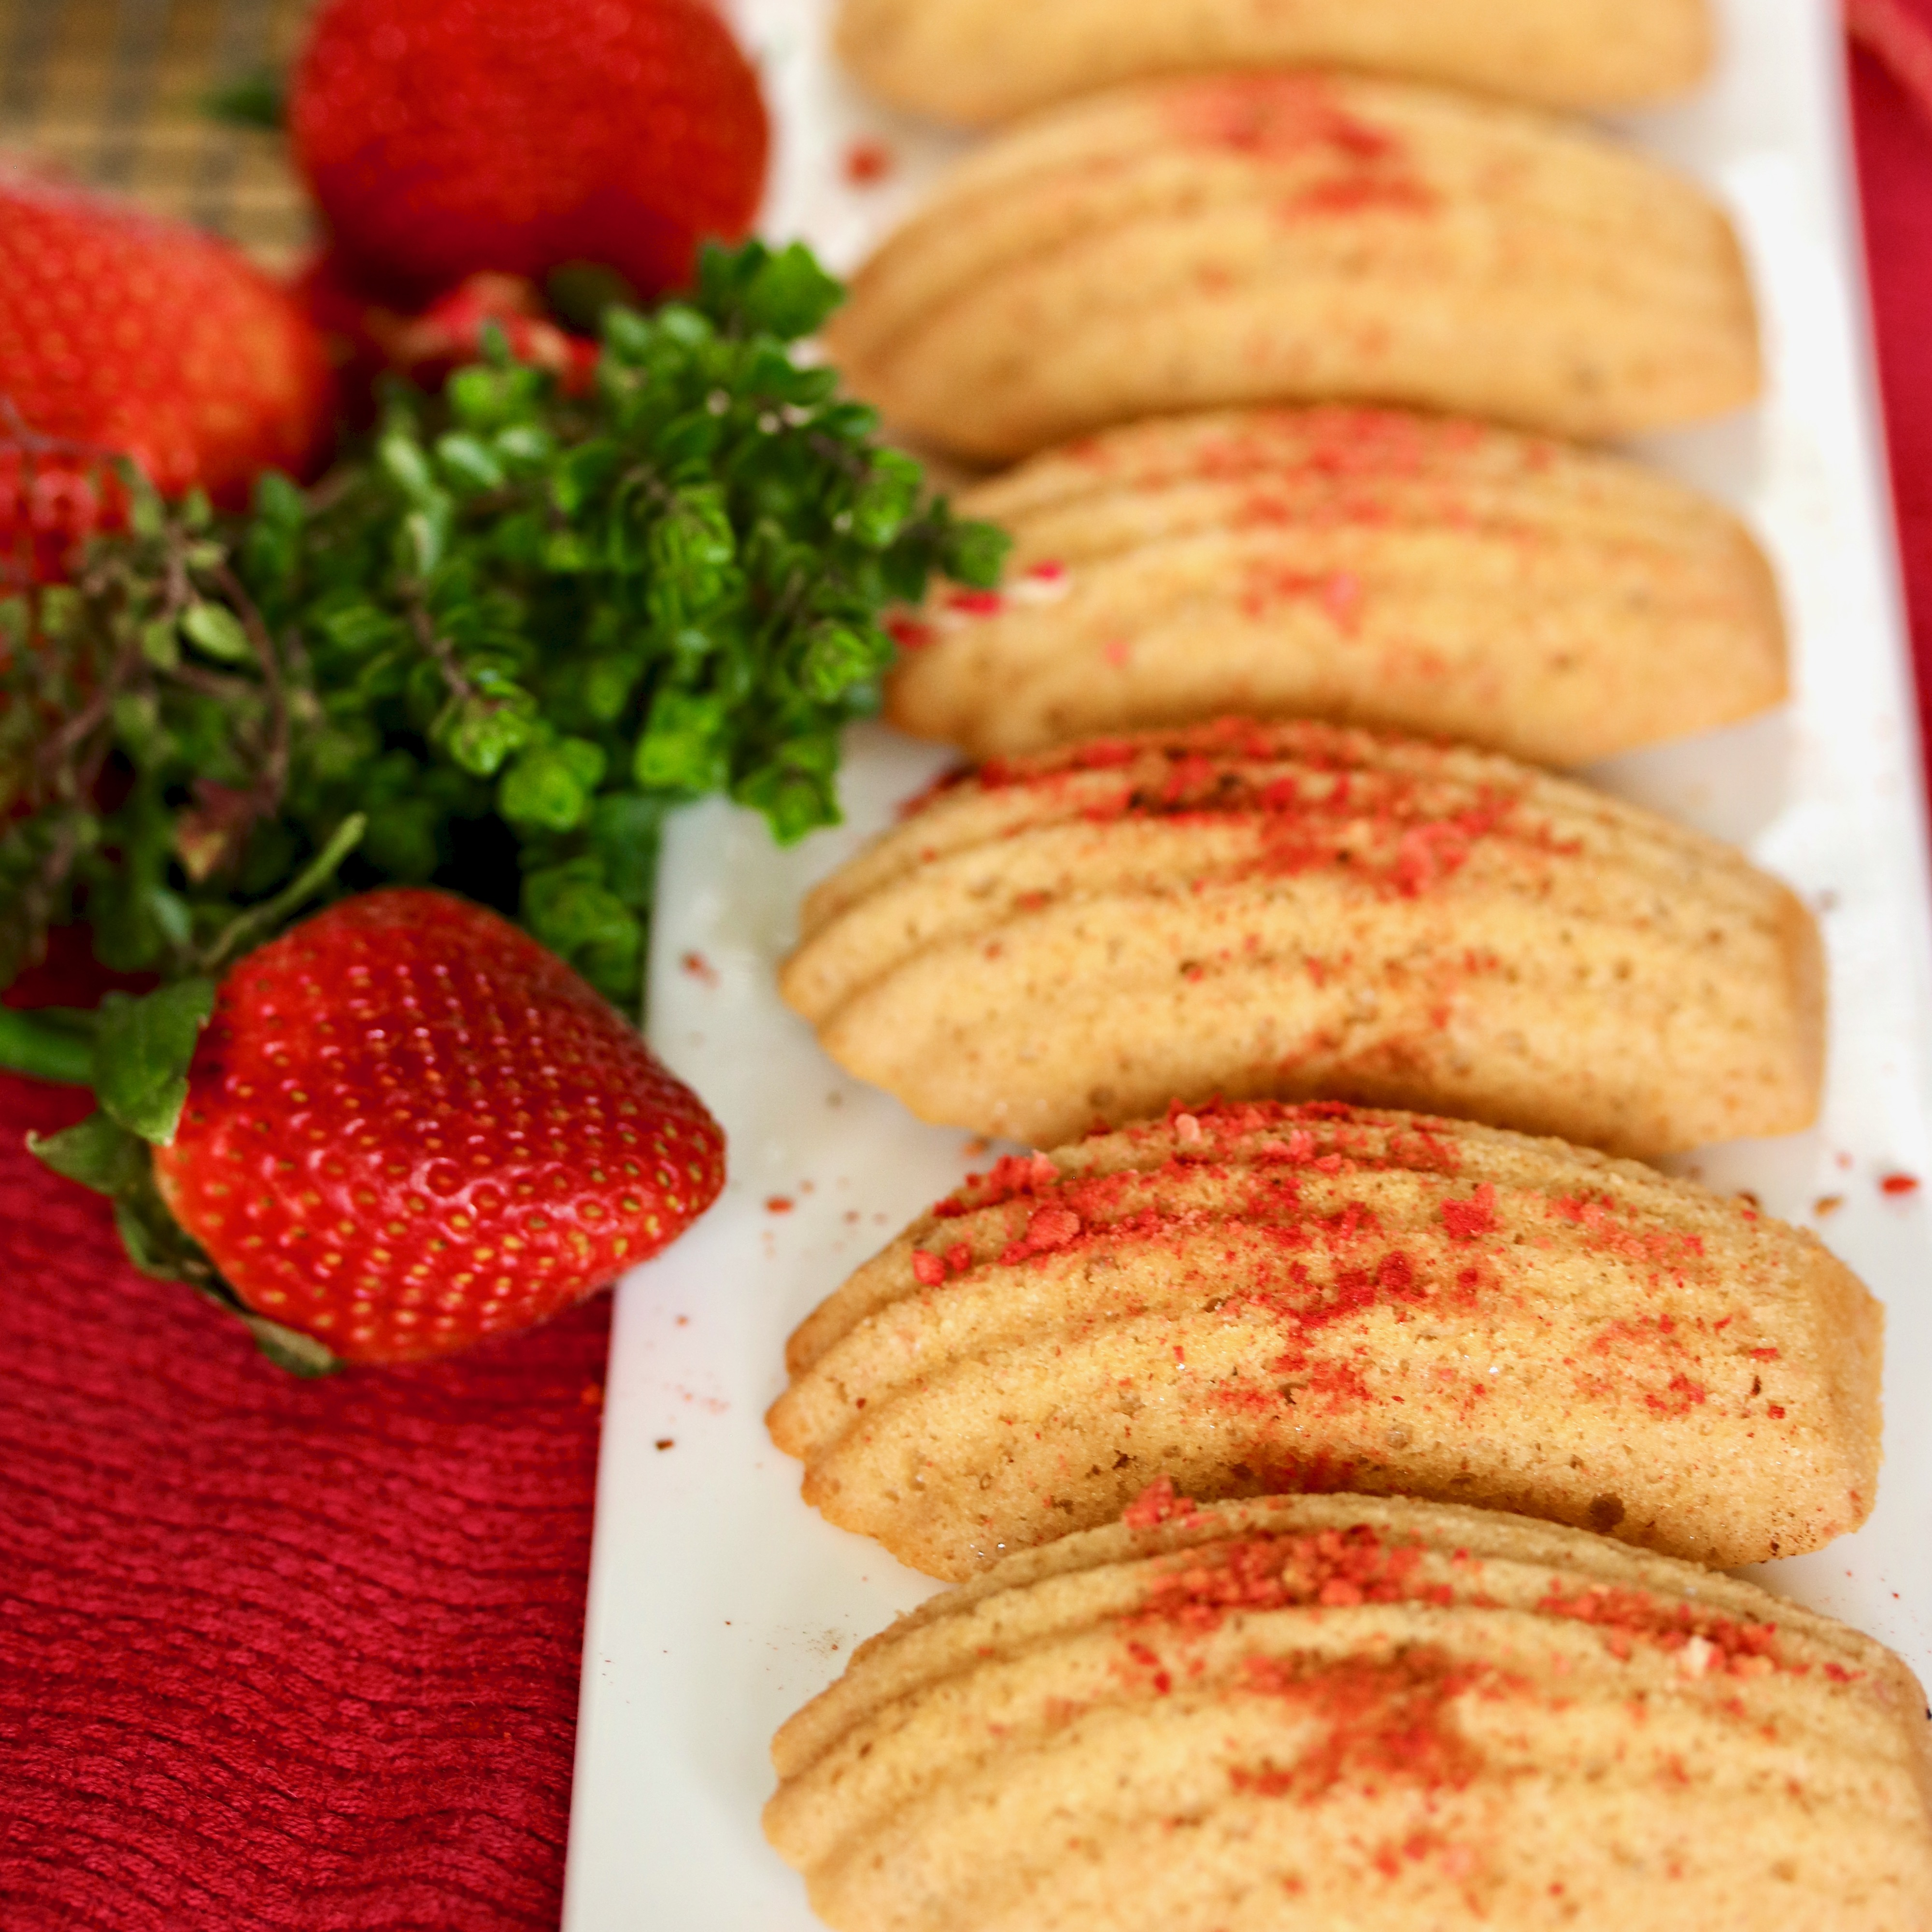 plated strawberry madeleines